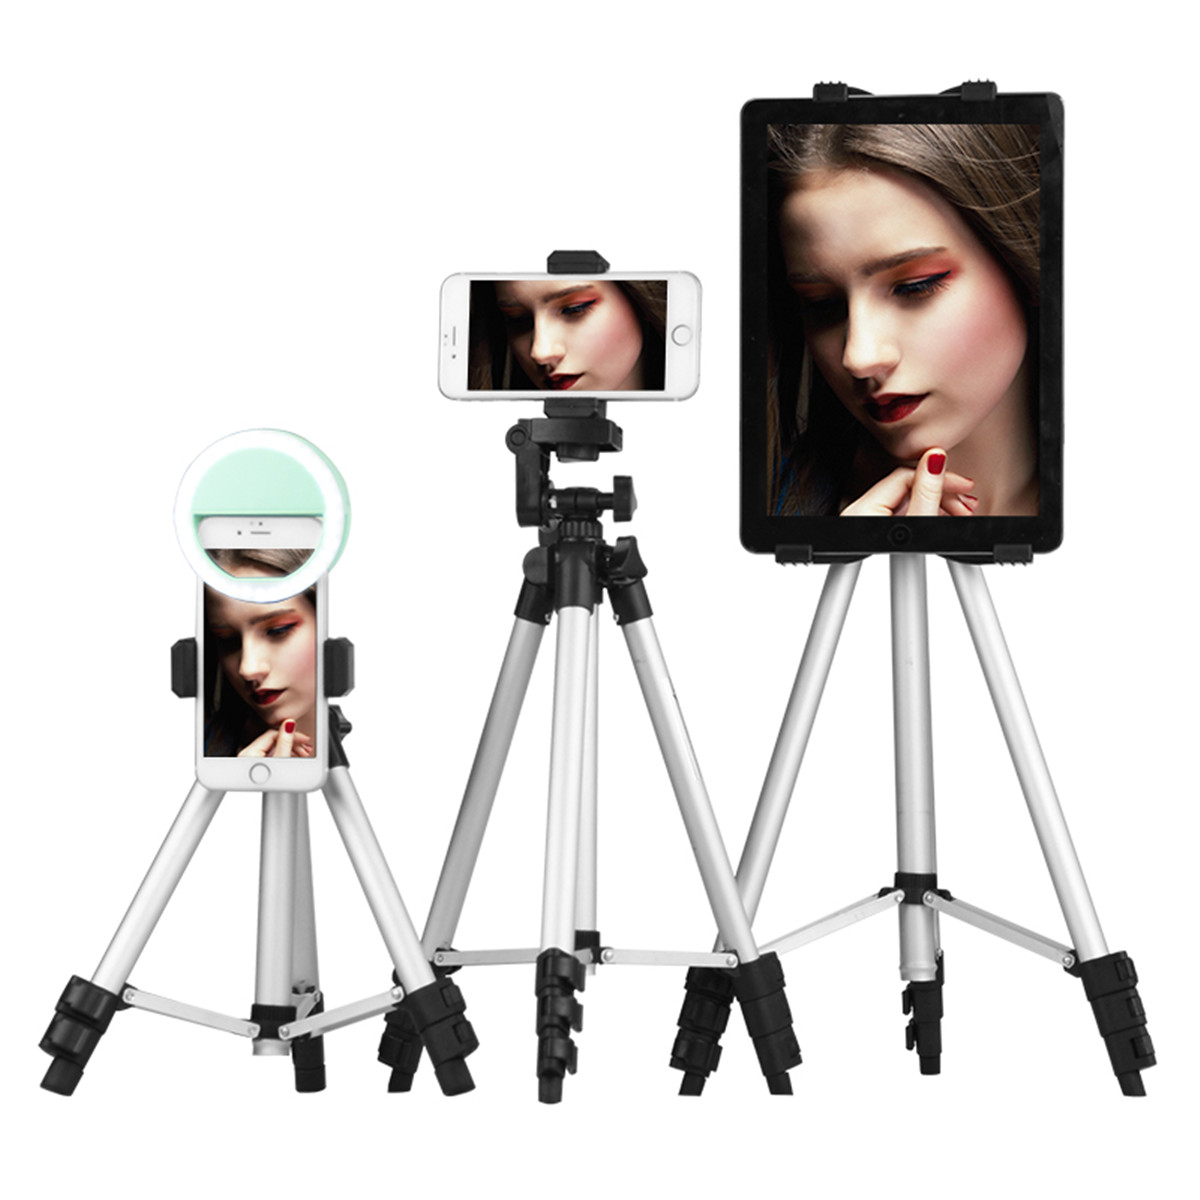 Extendable 36-100cm Universal Adjustable Tripod Stand Mount Holder Clip Camera Phone Holder Bracket For Cell Phone Camera 3